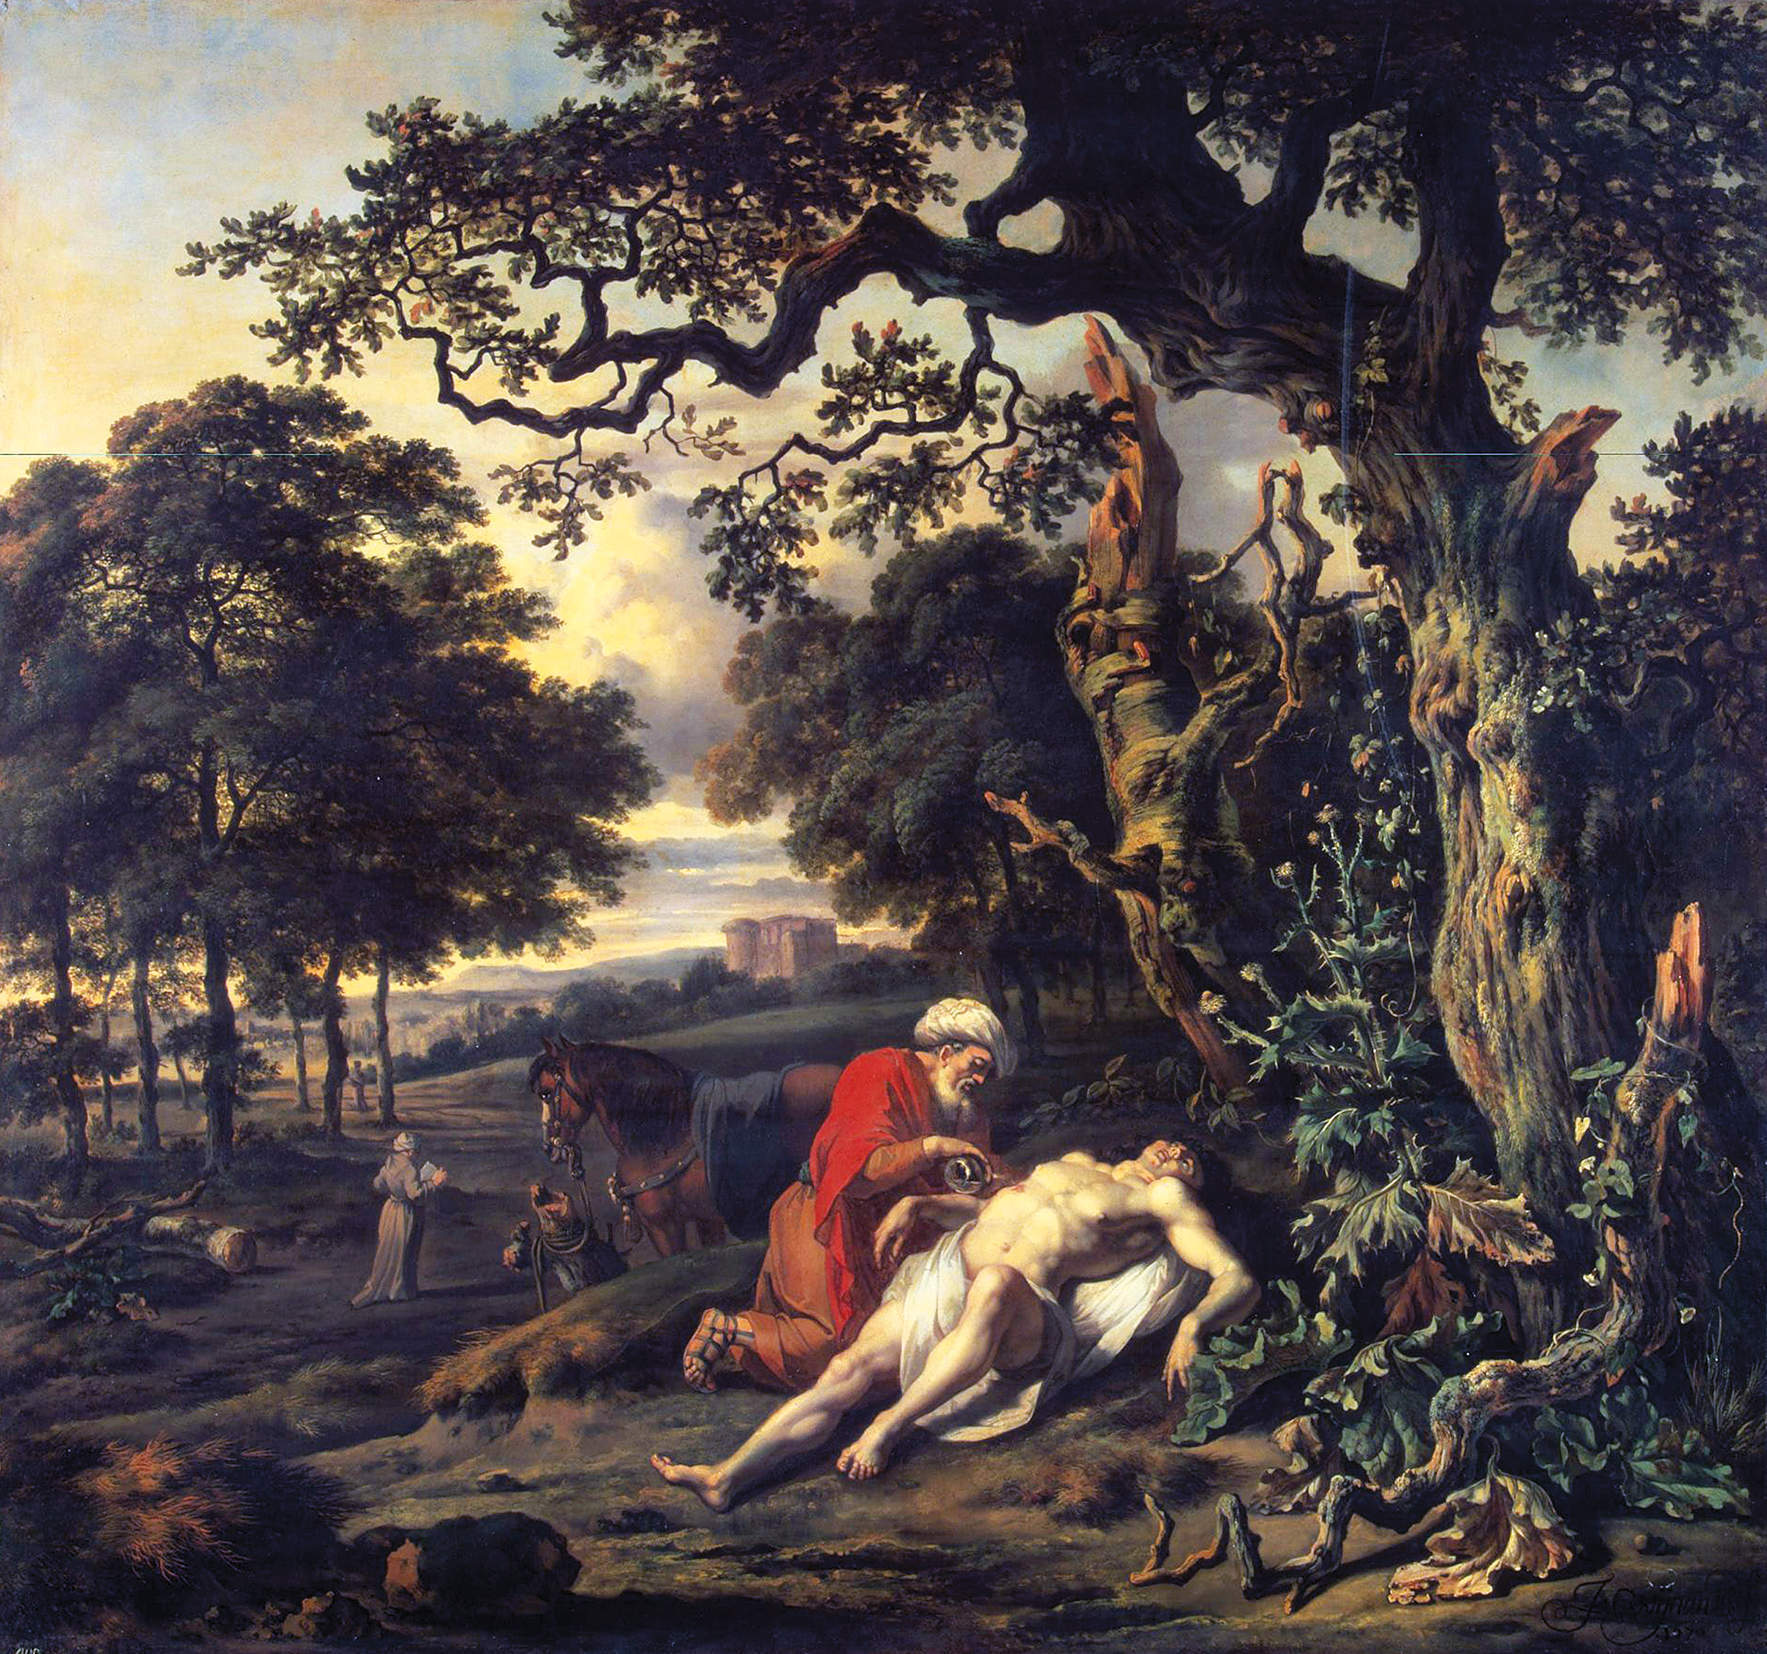 The Good Samaritan: how politics transformed the meaning of a biblical story